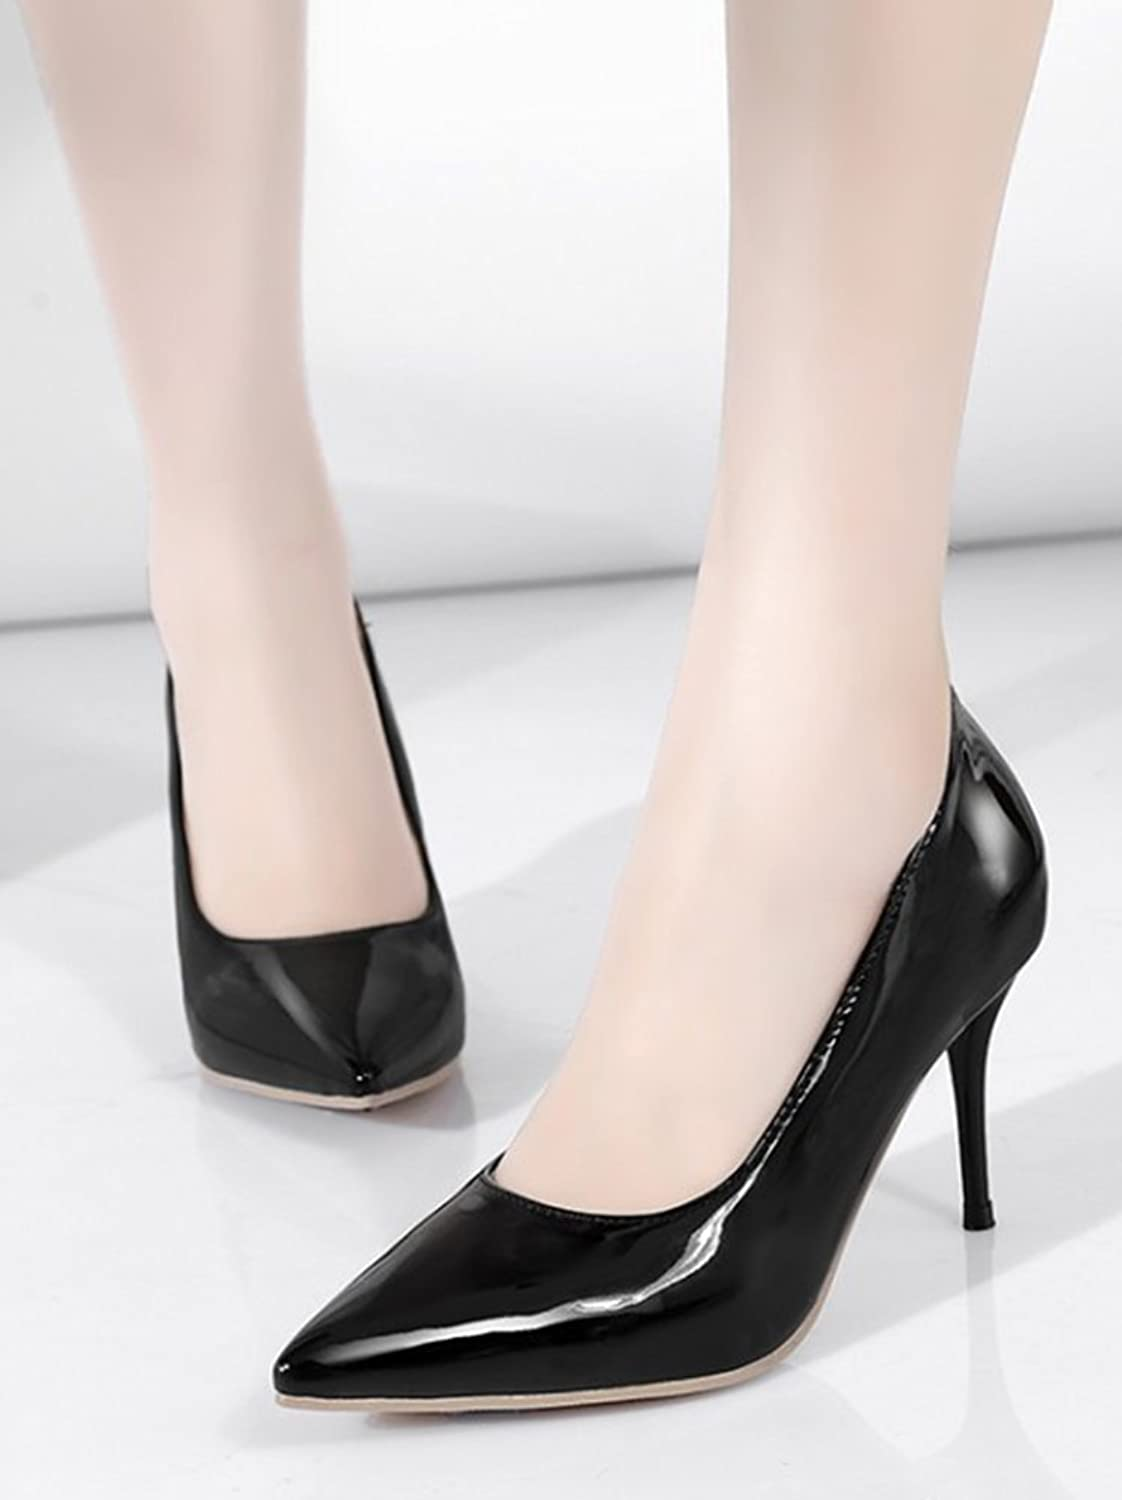 Aisun Women's Sexy Pointy Toe High Stiletto Heels Court Shoes:  Amazon.co.uk: Shoes & Bags